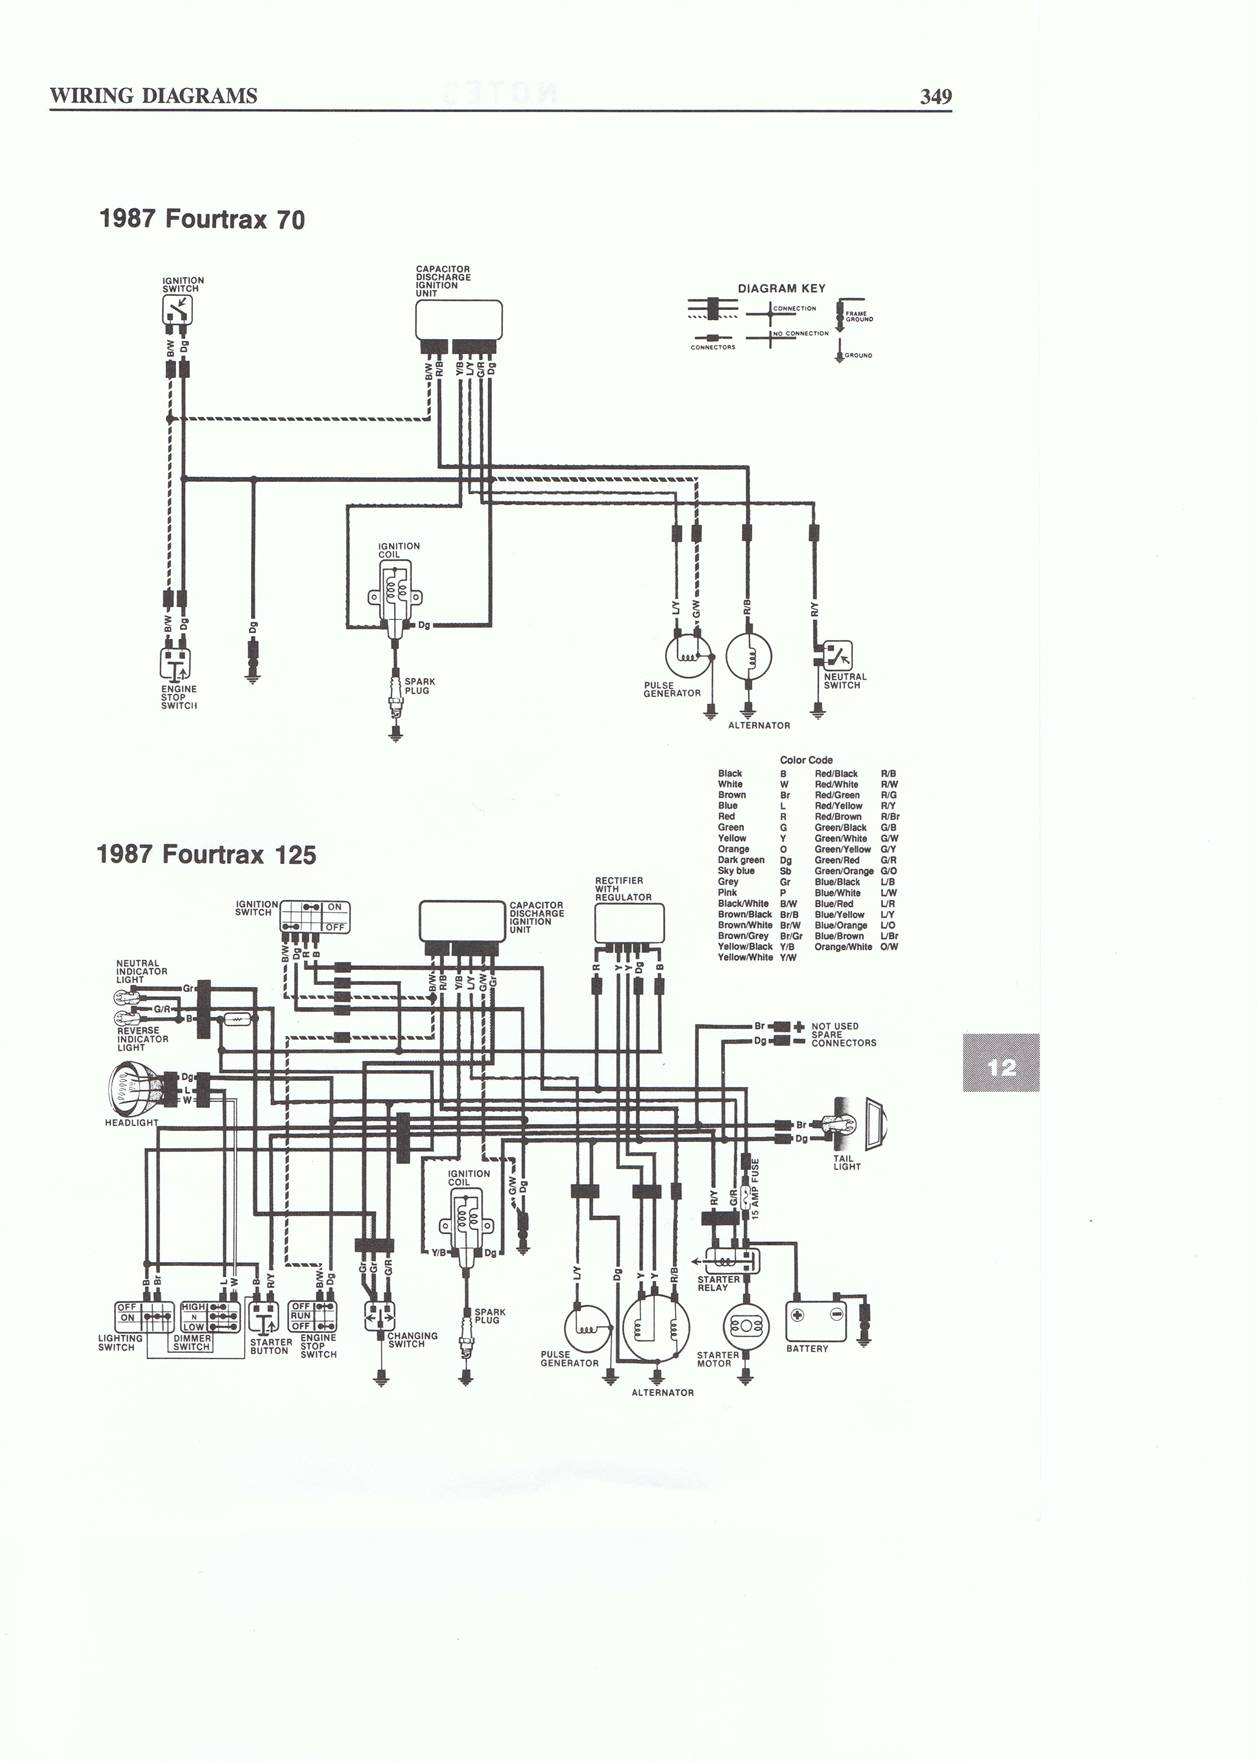 gy6 engine wiring diagram?t=1398725710 gy6 engine wiring diagram  at readyjetset.co